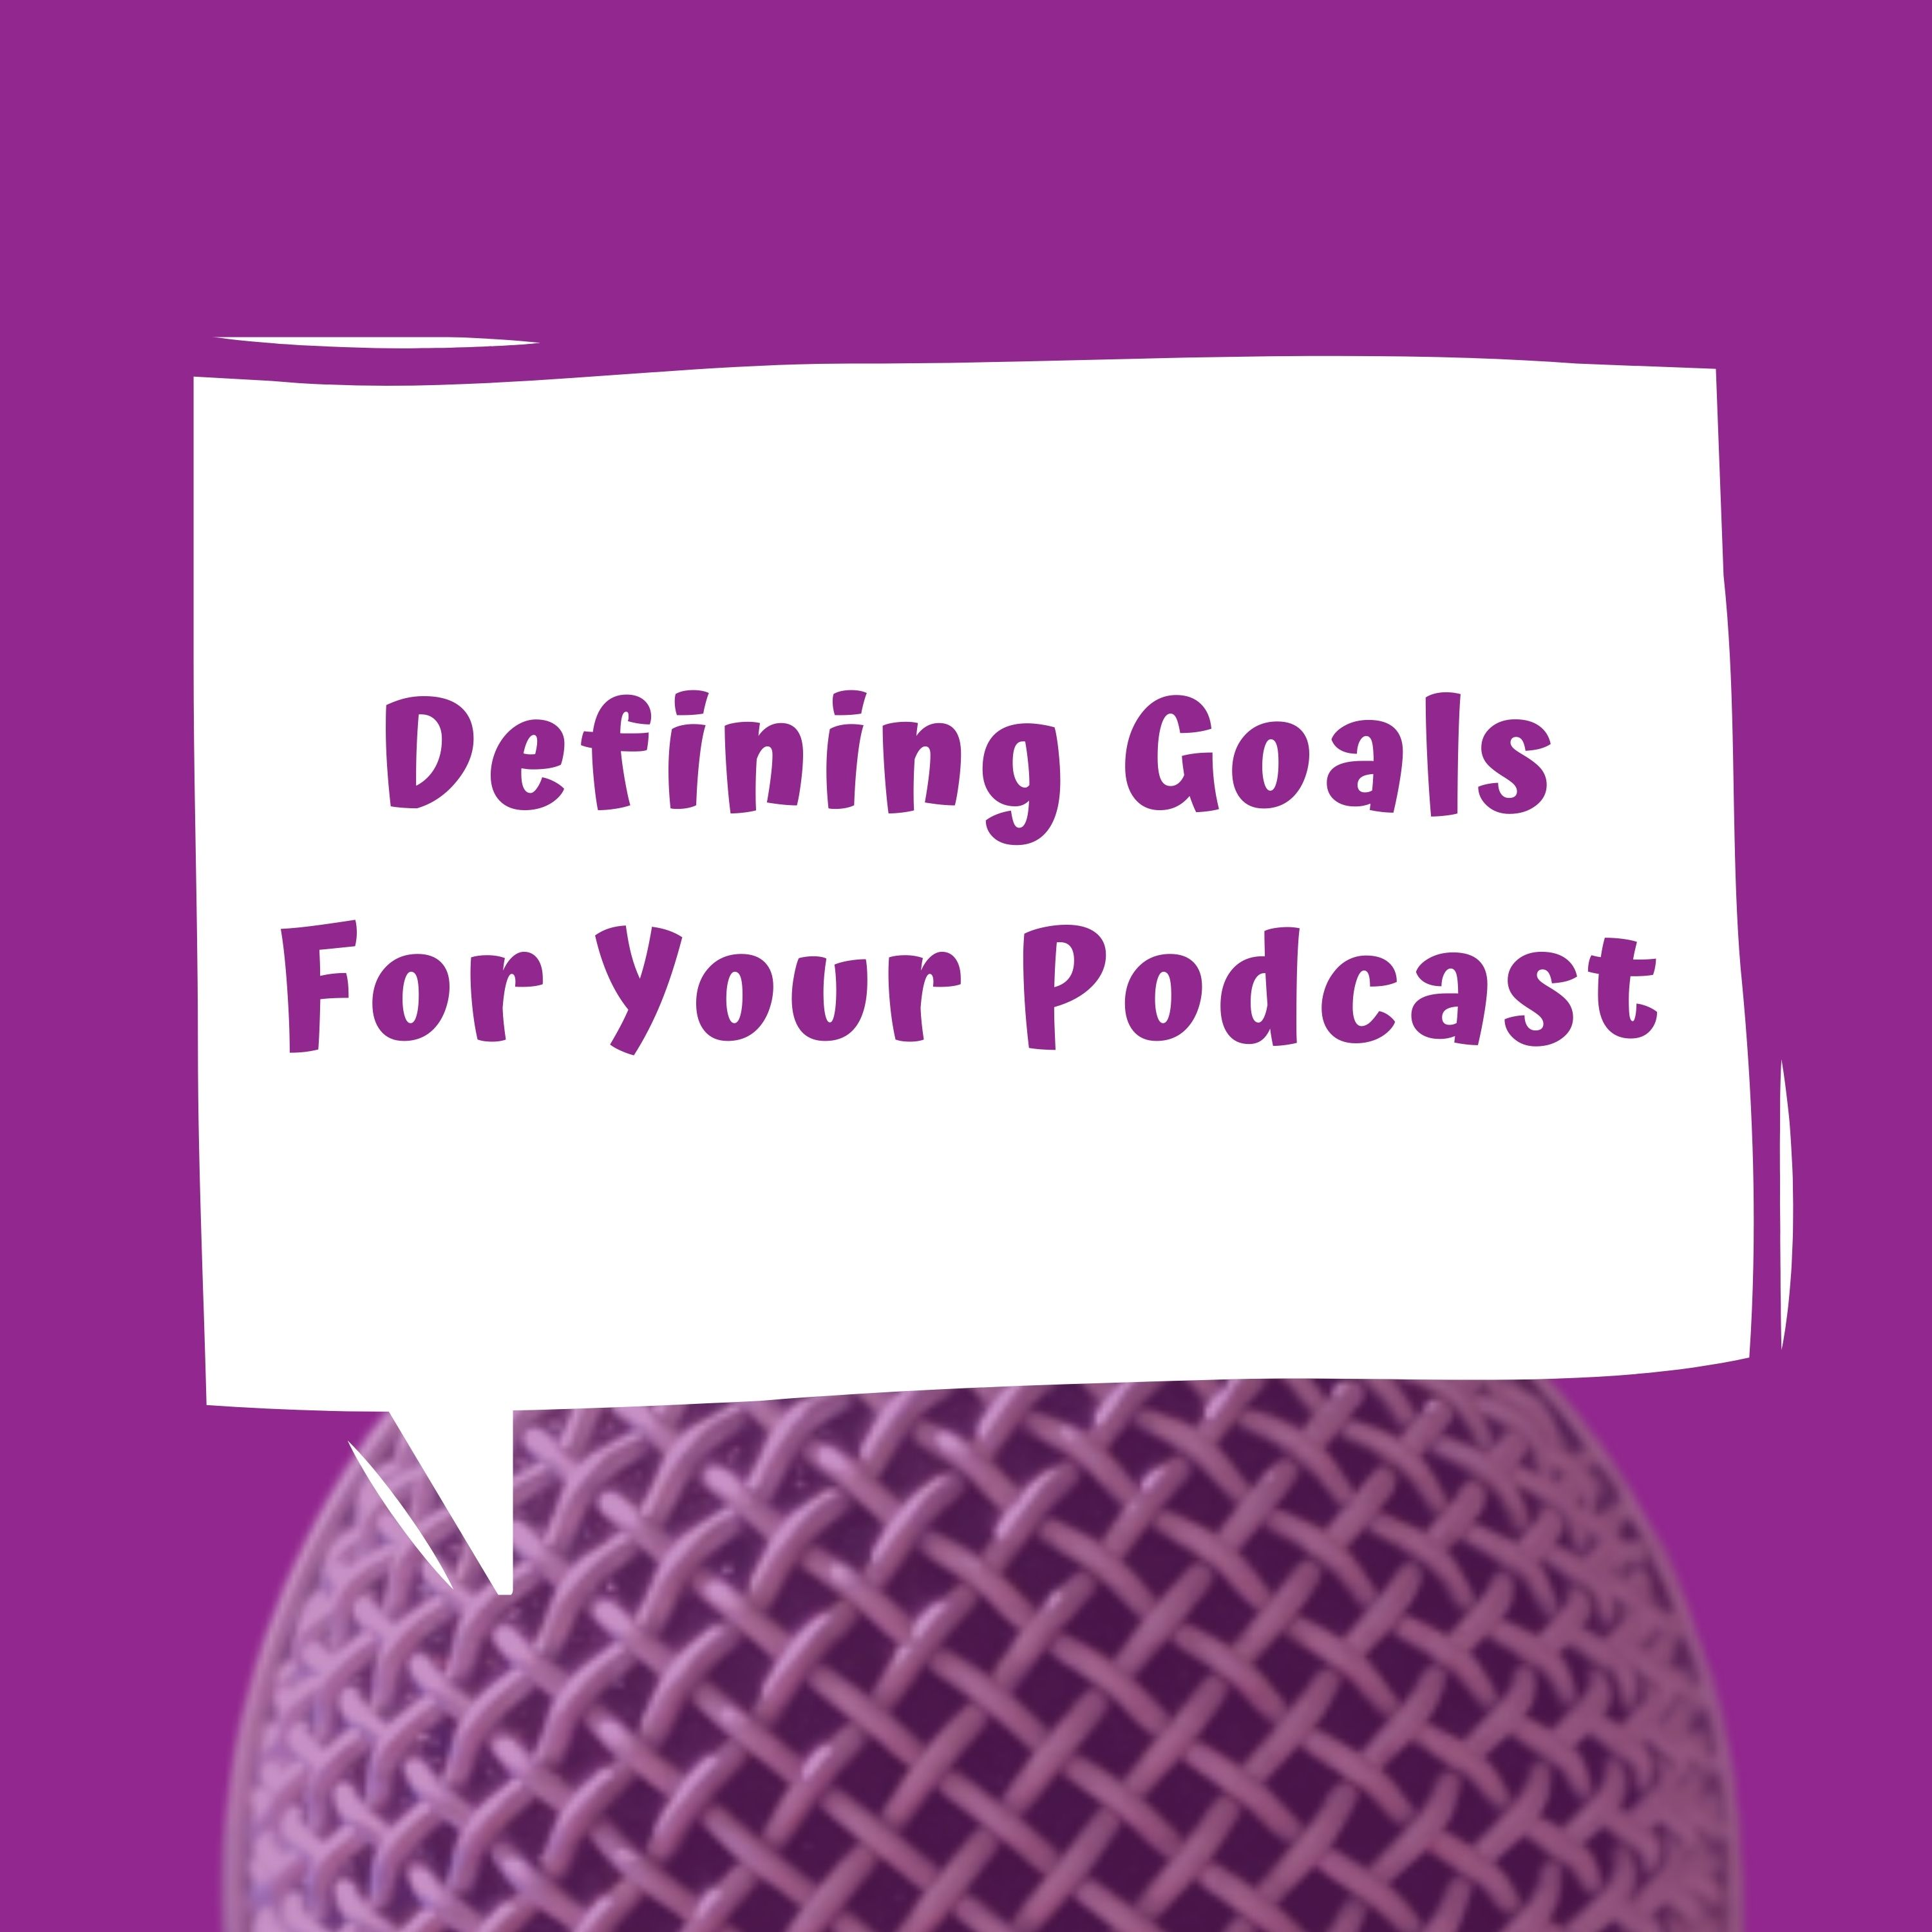 Defining Goals for Your Podcast